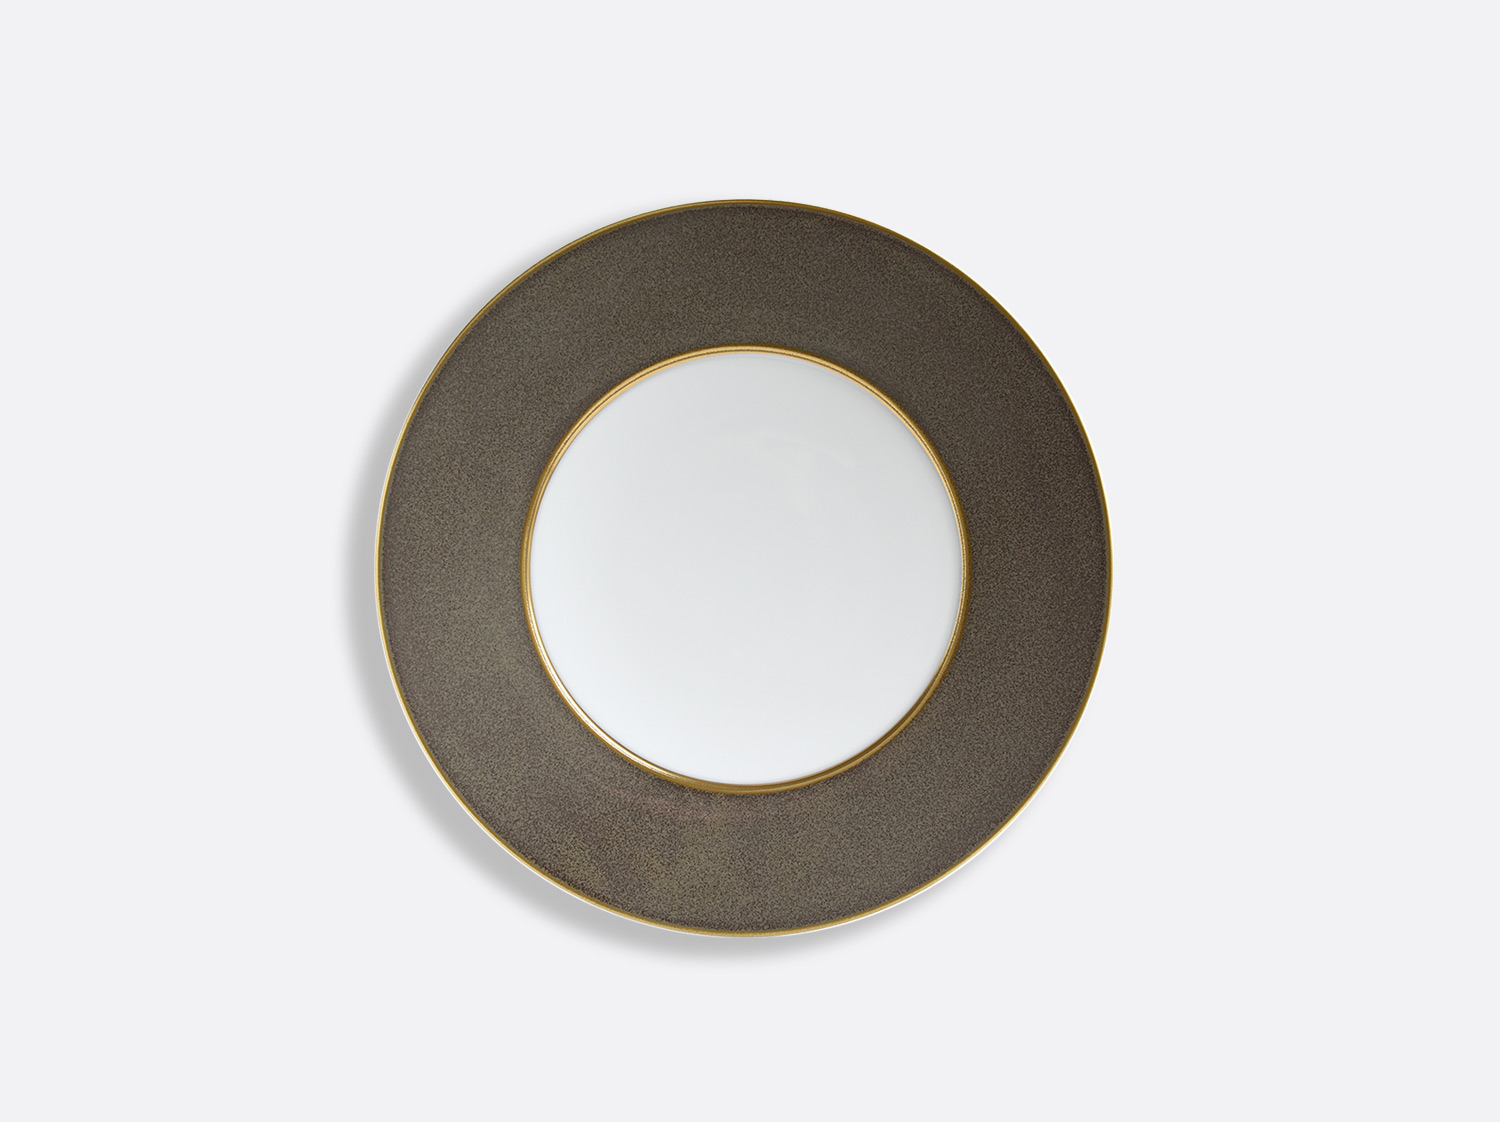 China Taupe/Or plate 16 cm of the collection ÉMAIL TAUPE - OR | Bernardaud